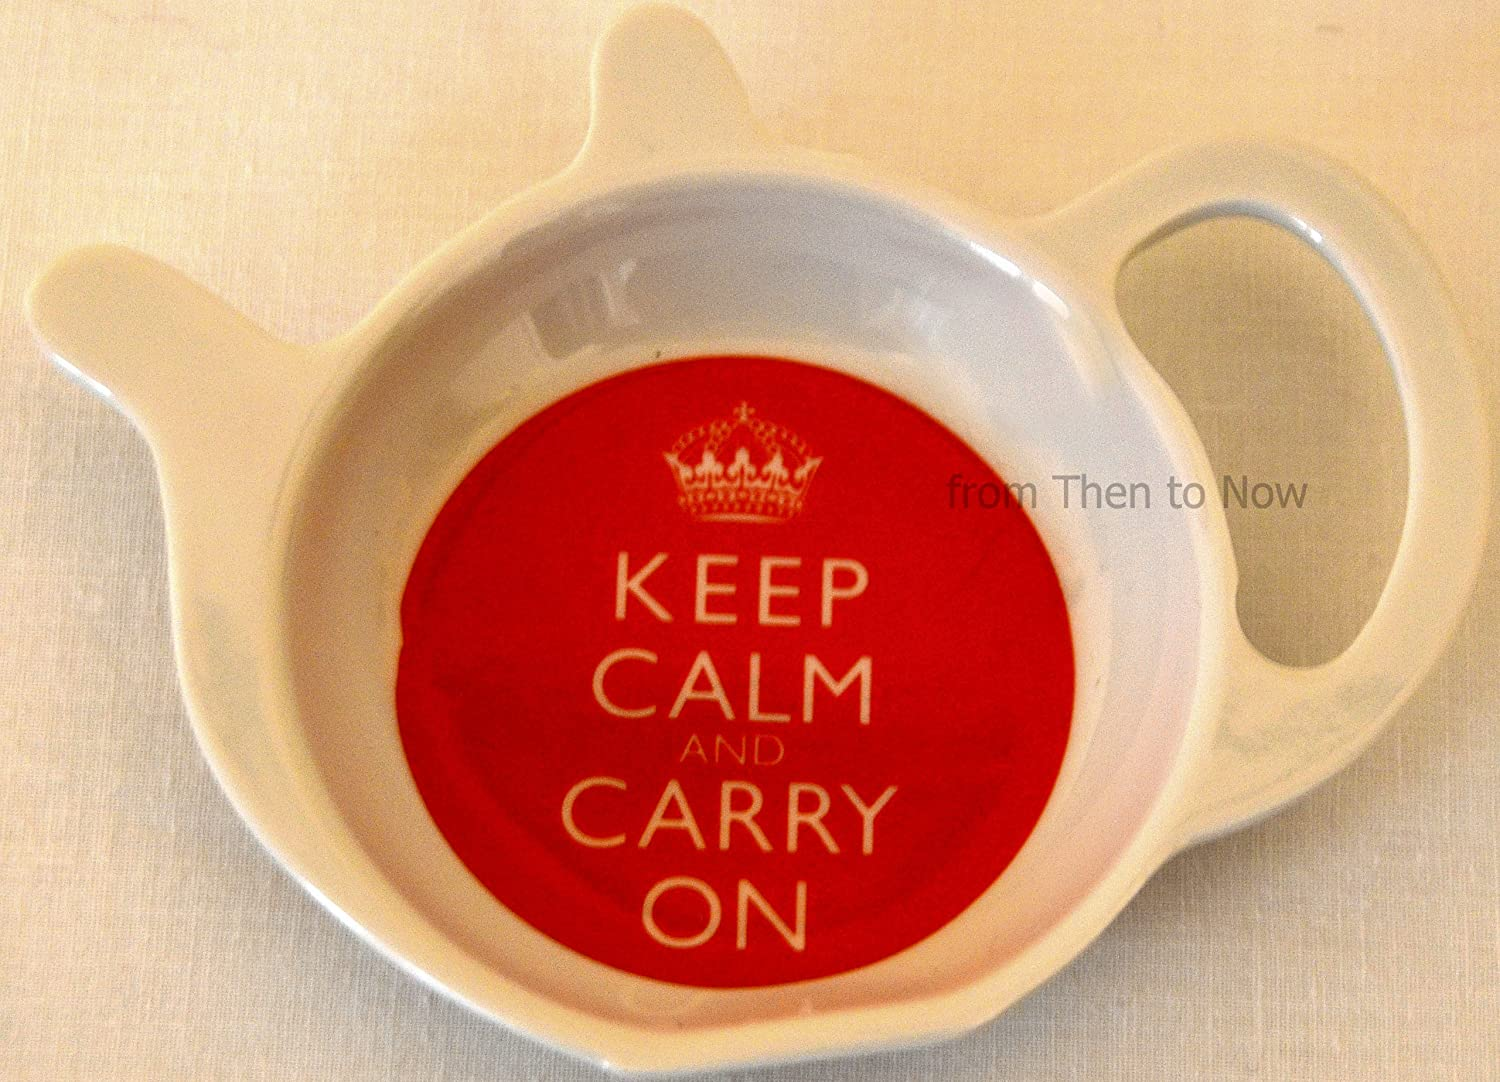 Keep Calm And Carry On Tea Bag Tidy Rest Holder Red & White Melamine LP98851